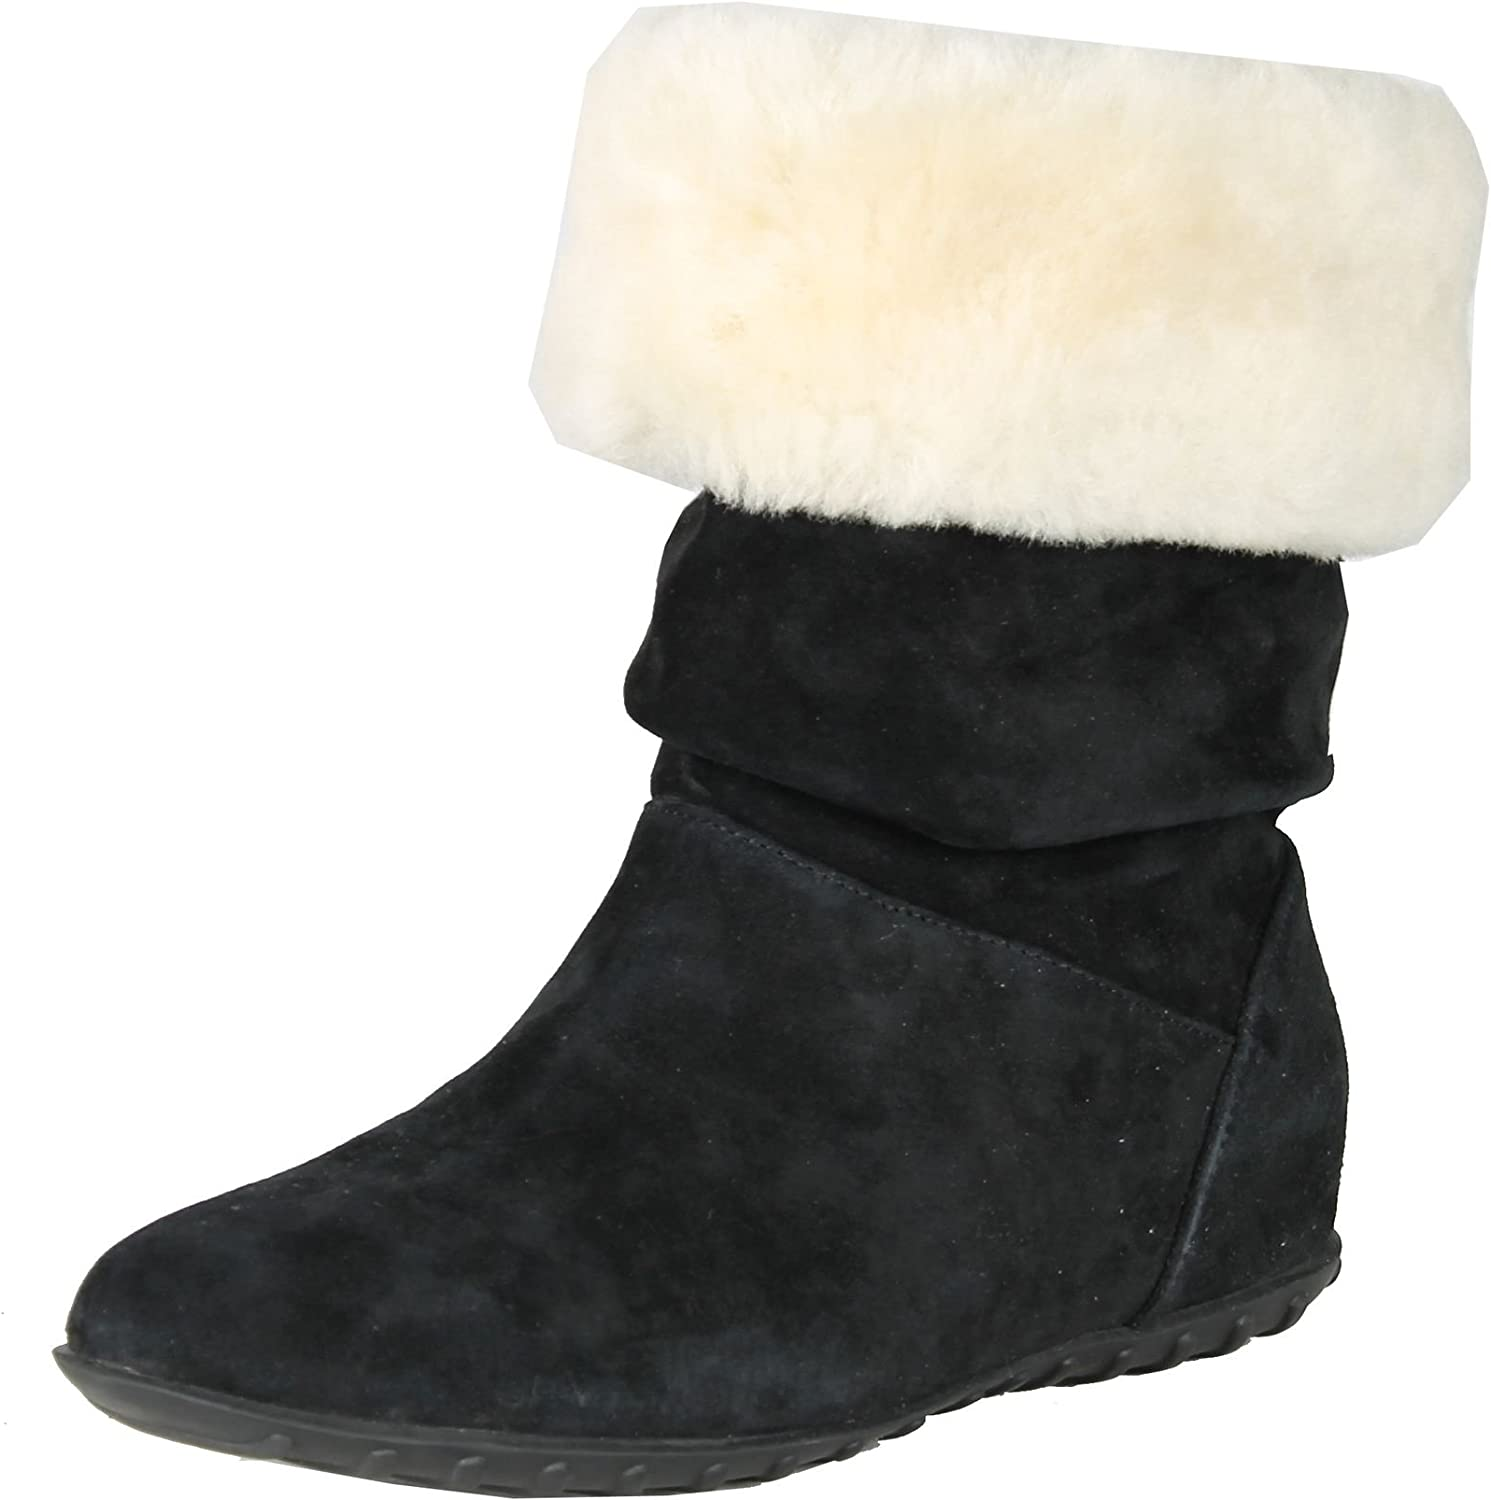 Envy Womens Alpine Fashion Boots with Faux Fur